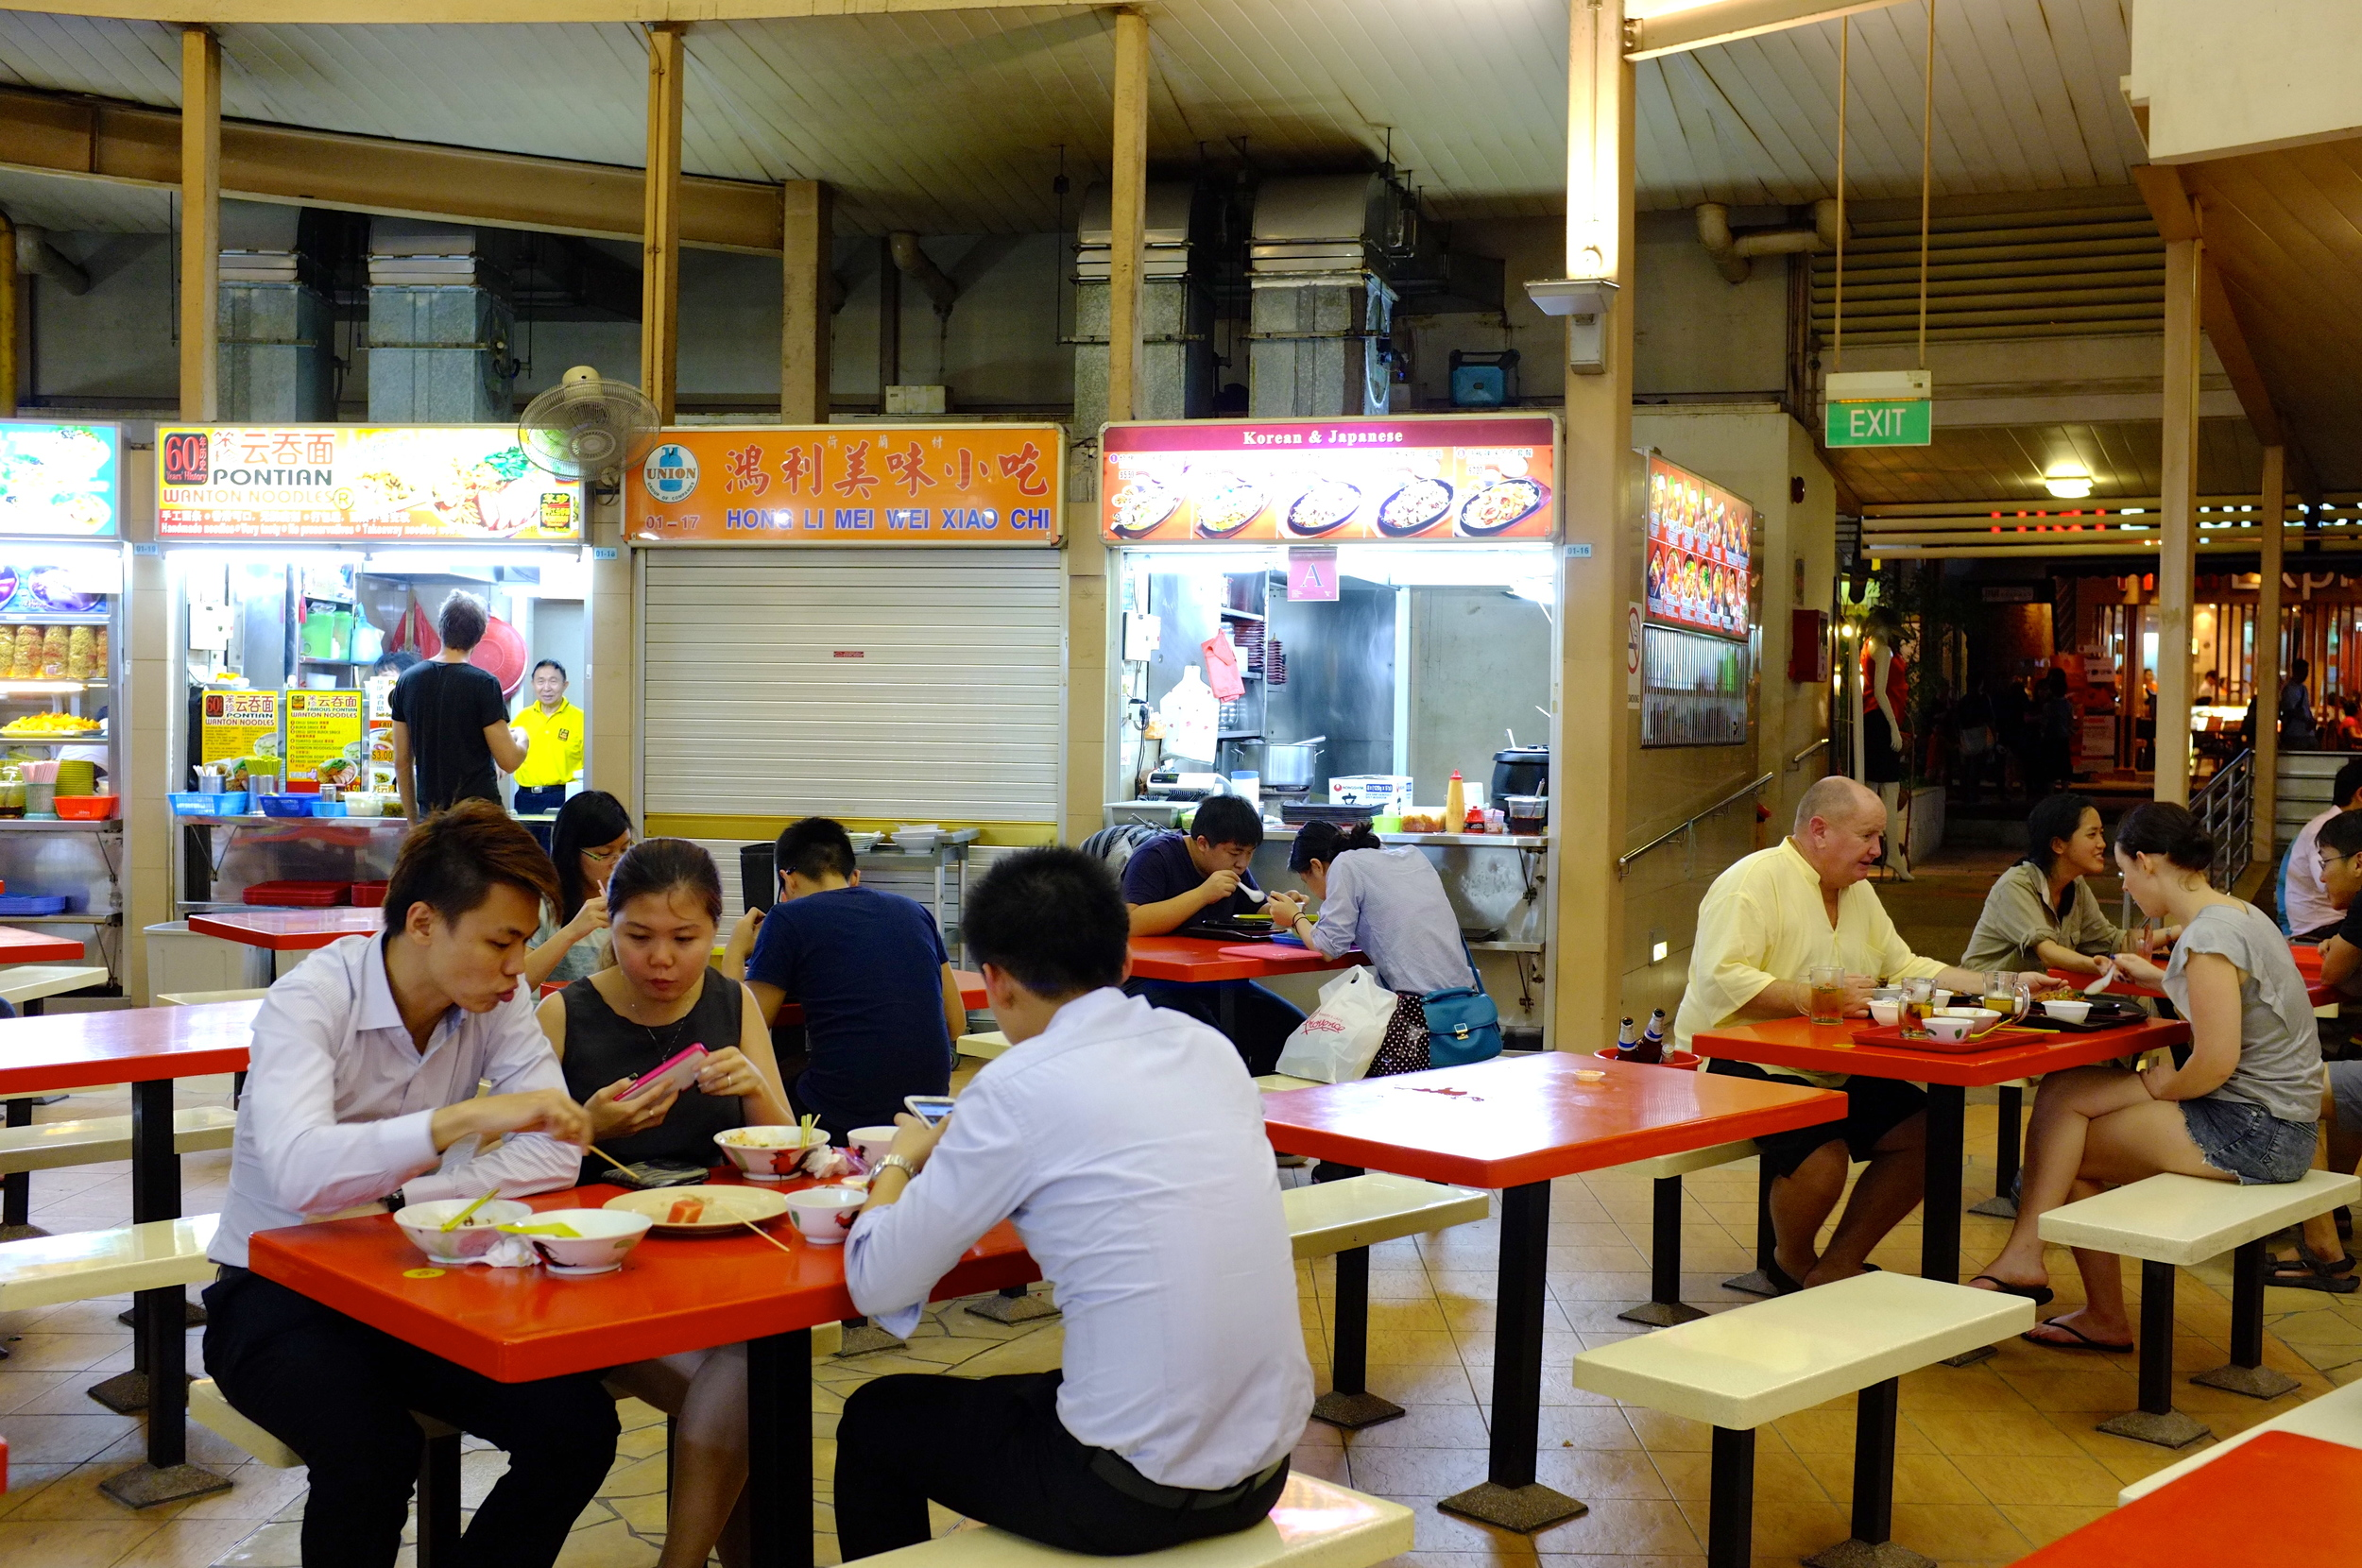 Dinner time, Holland Village Market and Food Centre